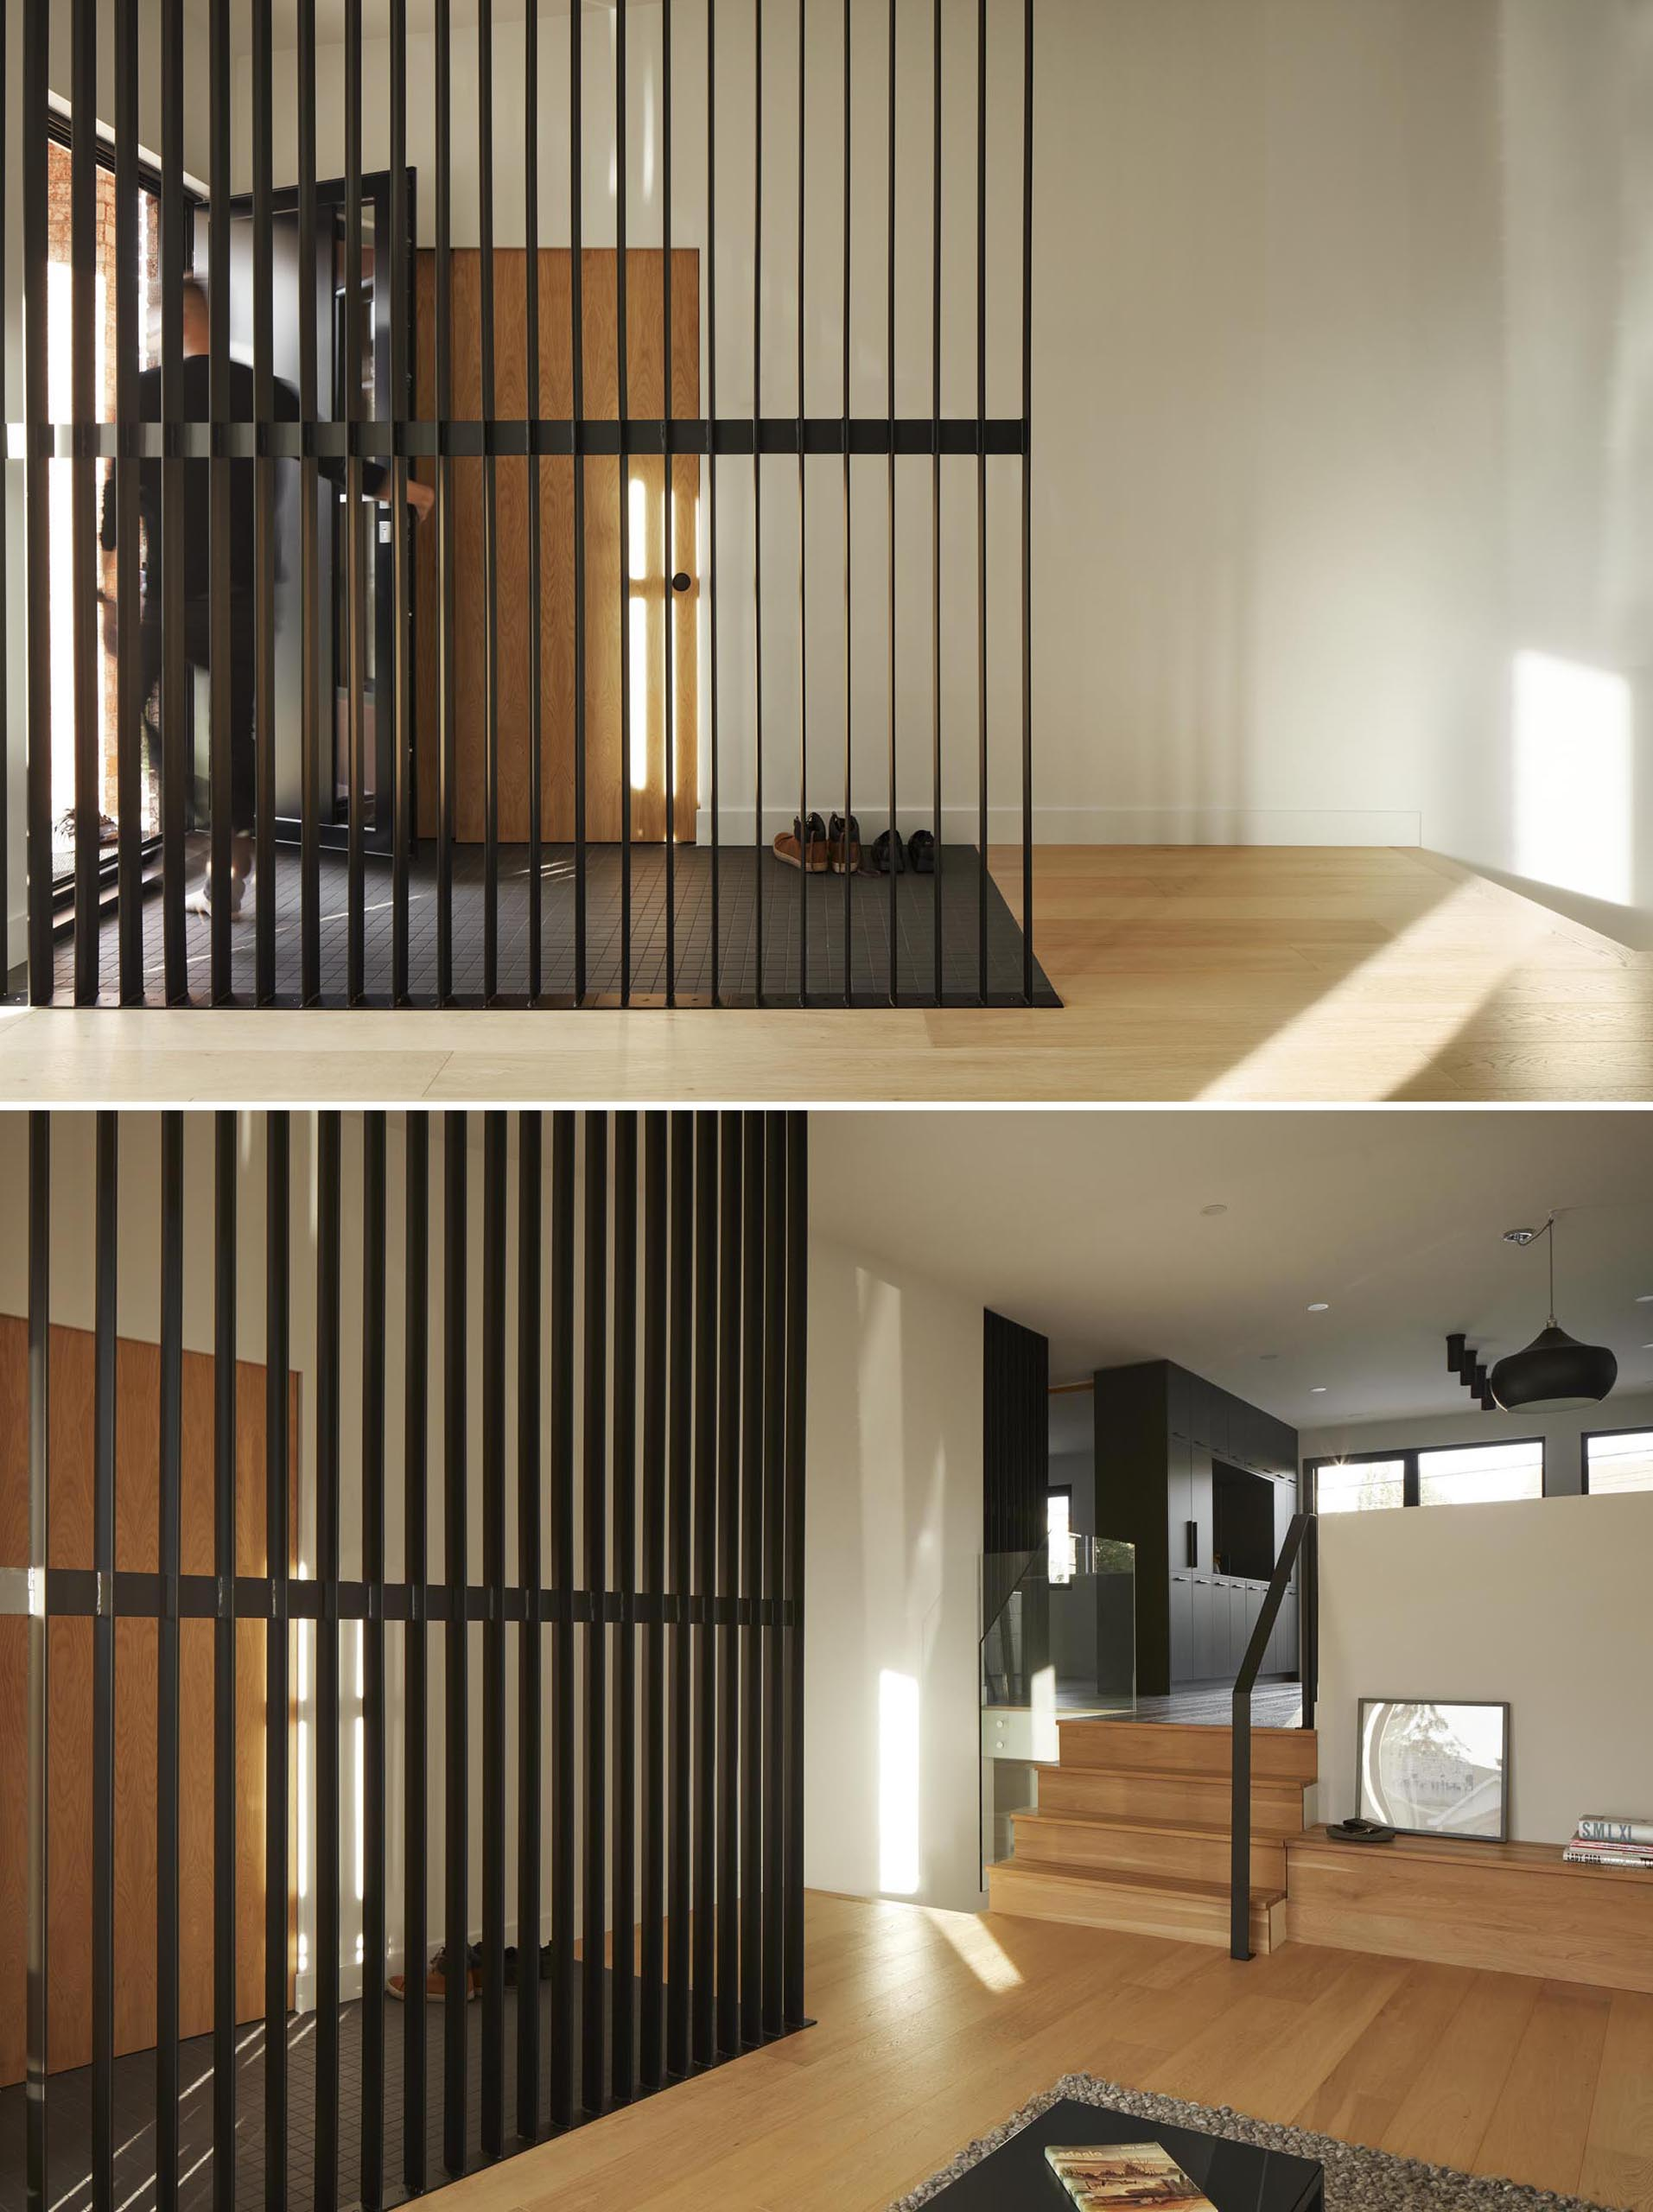 This modern room divider, which also complements the dark tiled floor, allows the light from the living room to travel through to the entryway.